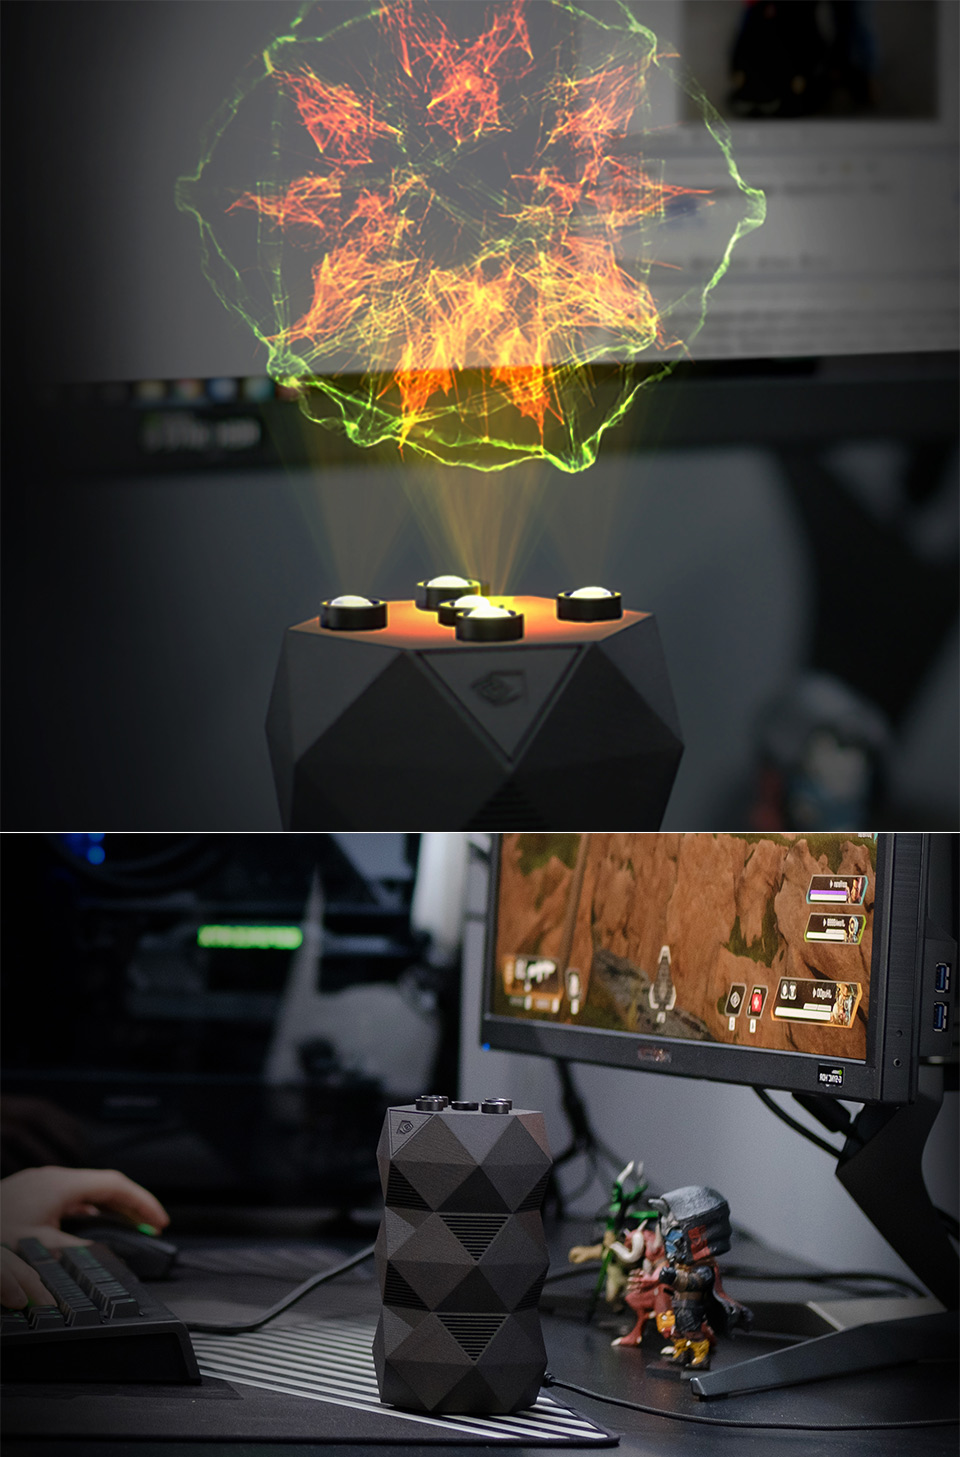 NVIDIA April Fools' Day Artificial Intelligence